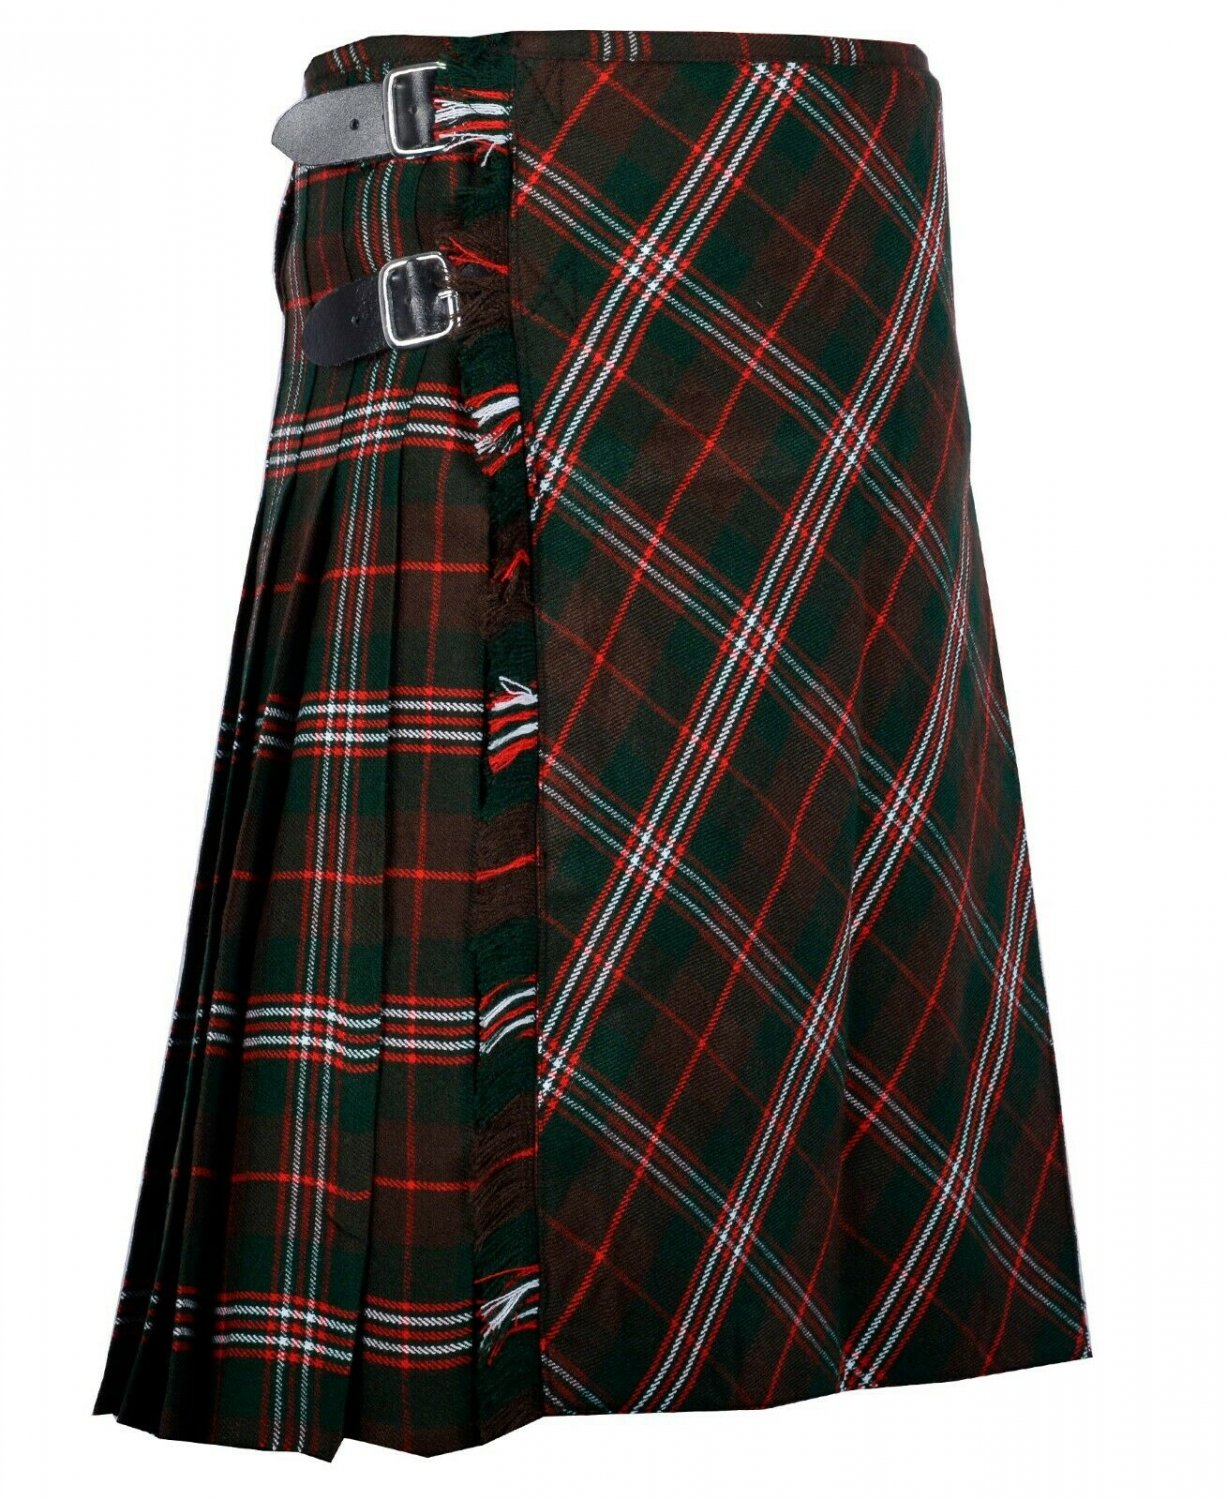 50 inches waist Bias Apron Traditional 5 Yard Scottish Kilt for Men - Scott Hunting Tartan